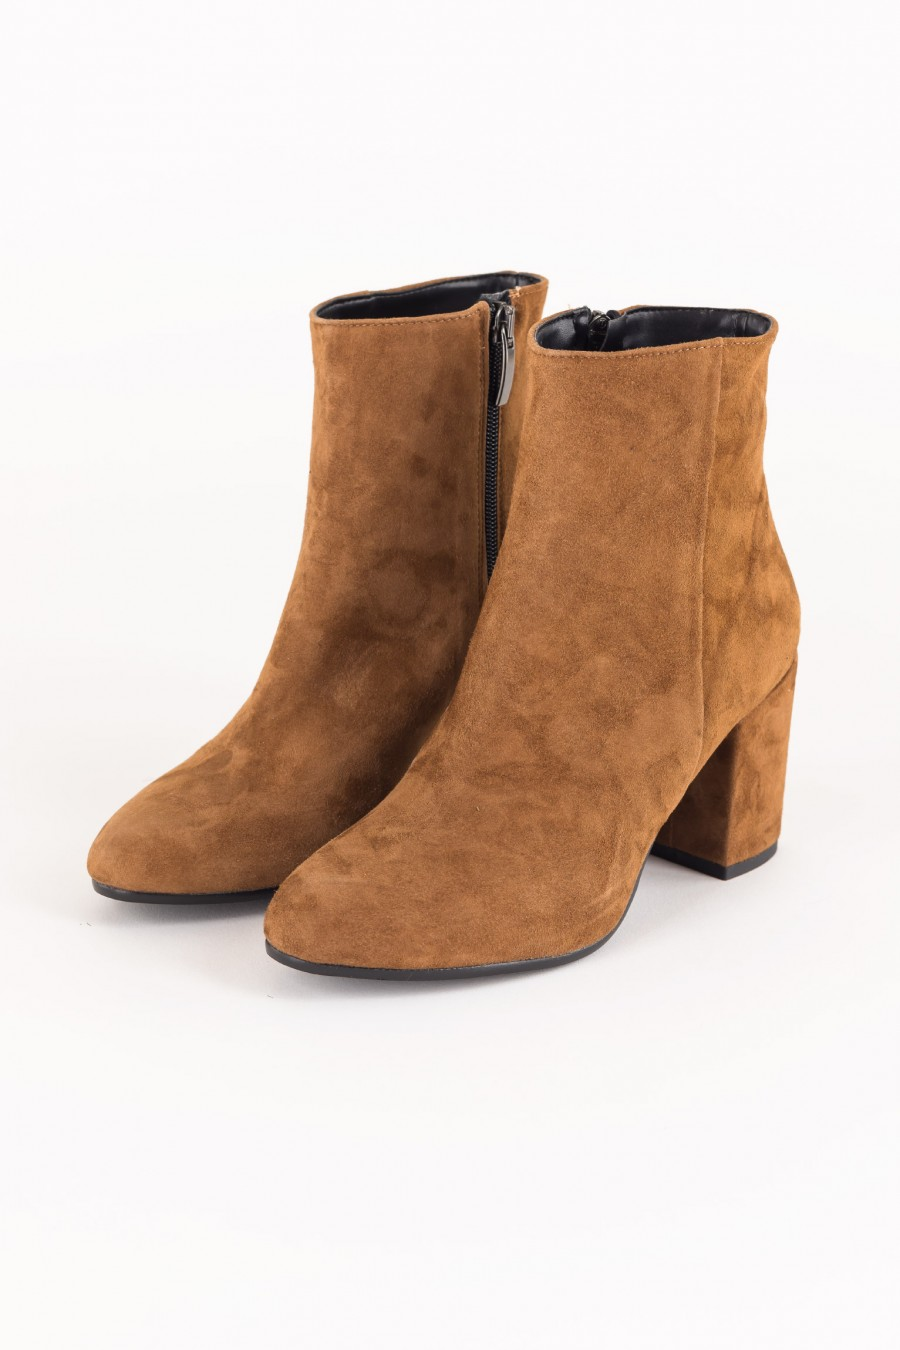 Boots with side zip